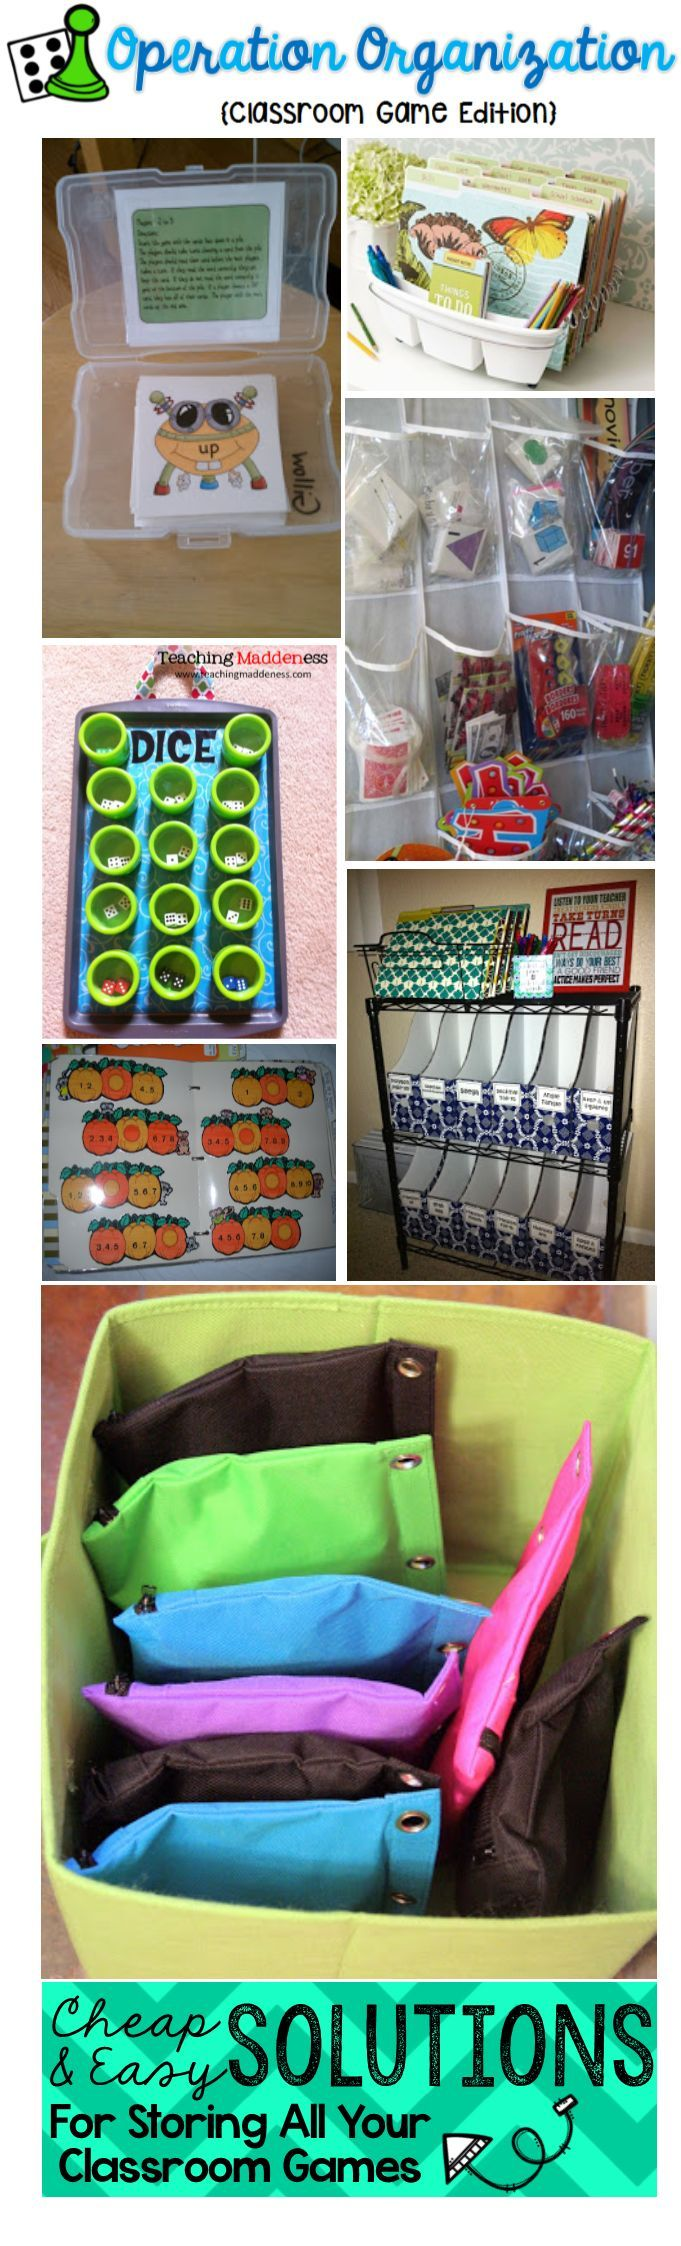 Classroom Design Games ~ Best pretty organized classroom images on pinterest